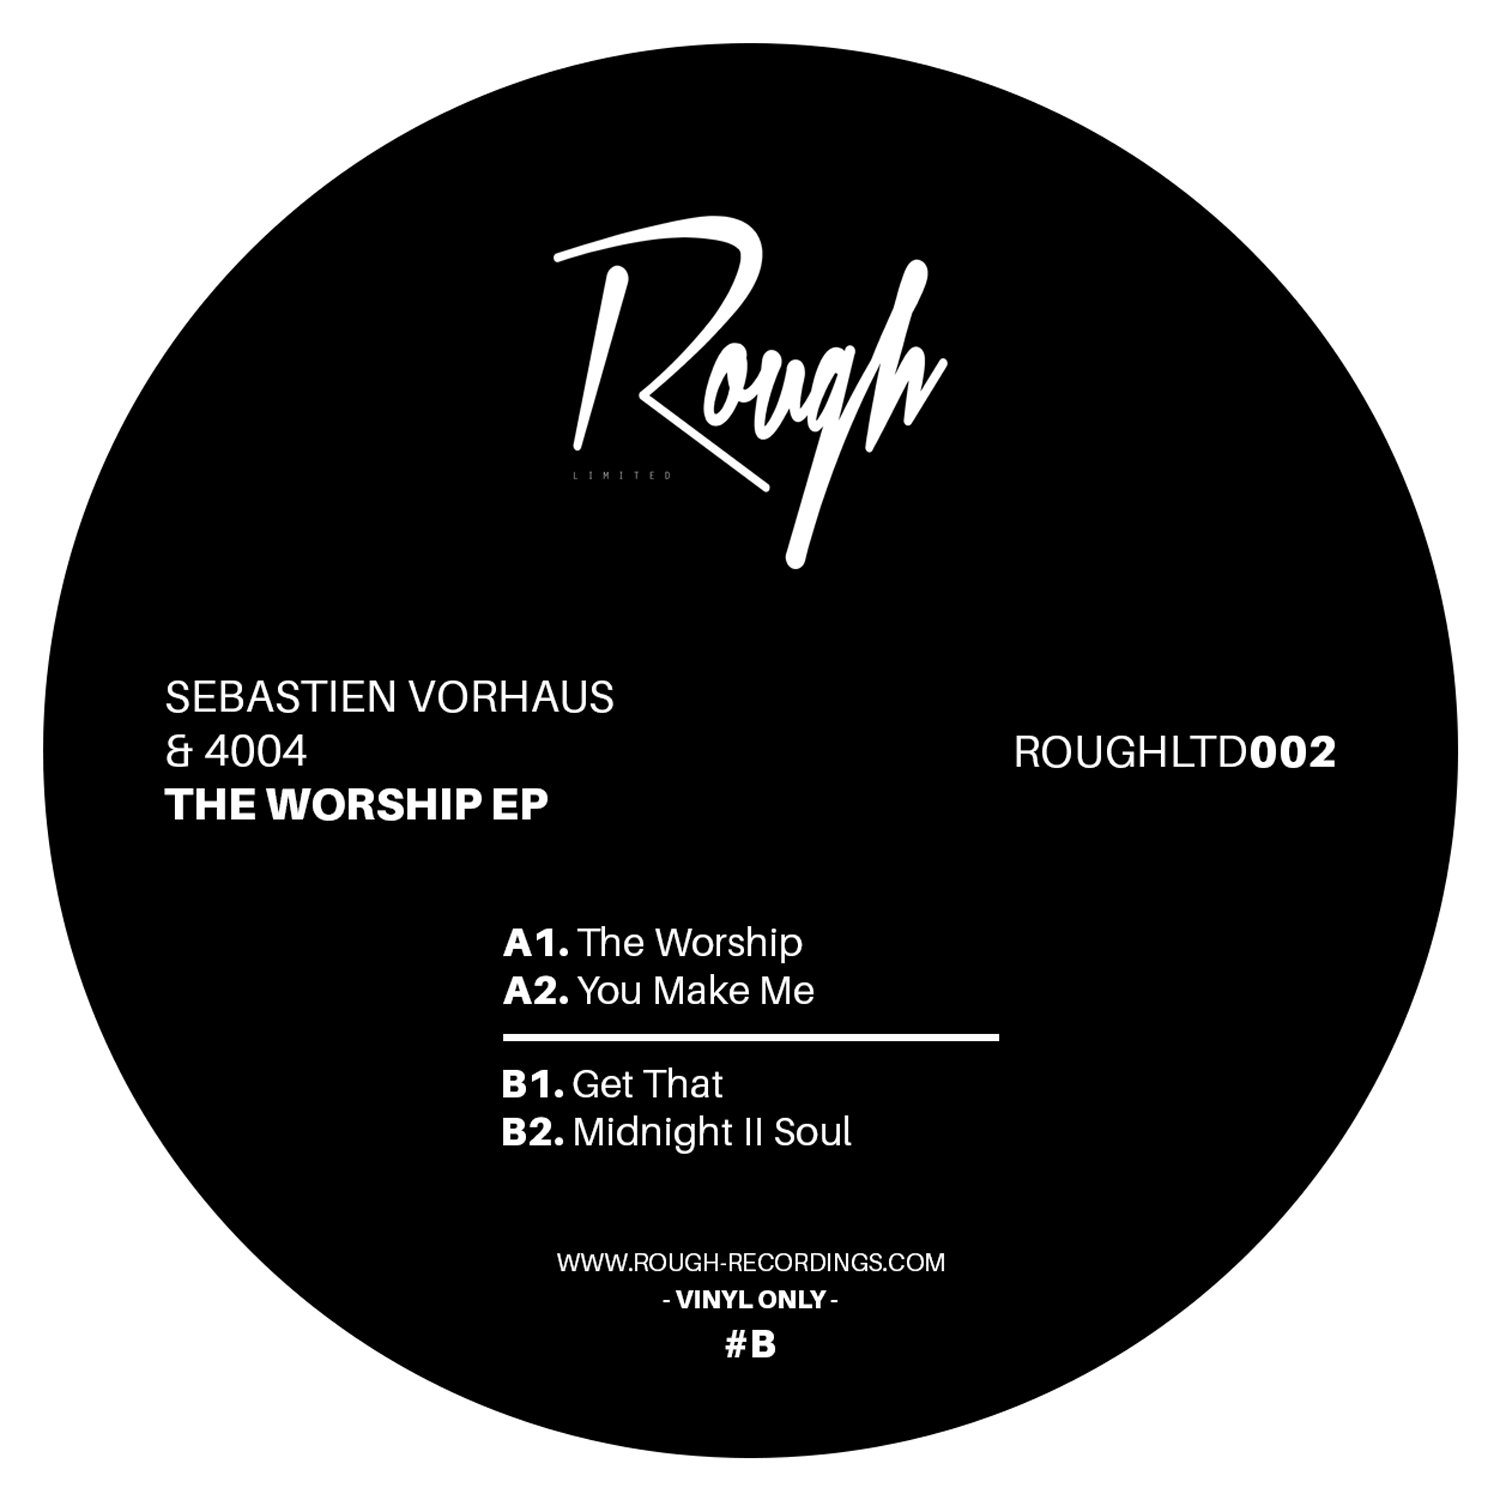 https://www.rough-recordings.com/wp-content/uploads/ROUGHLTD002_B.jpg